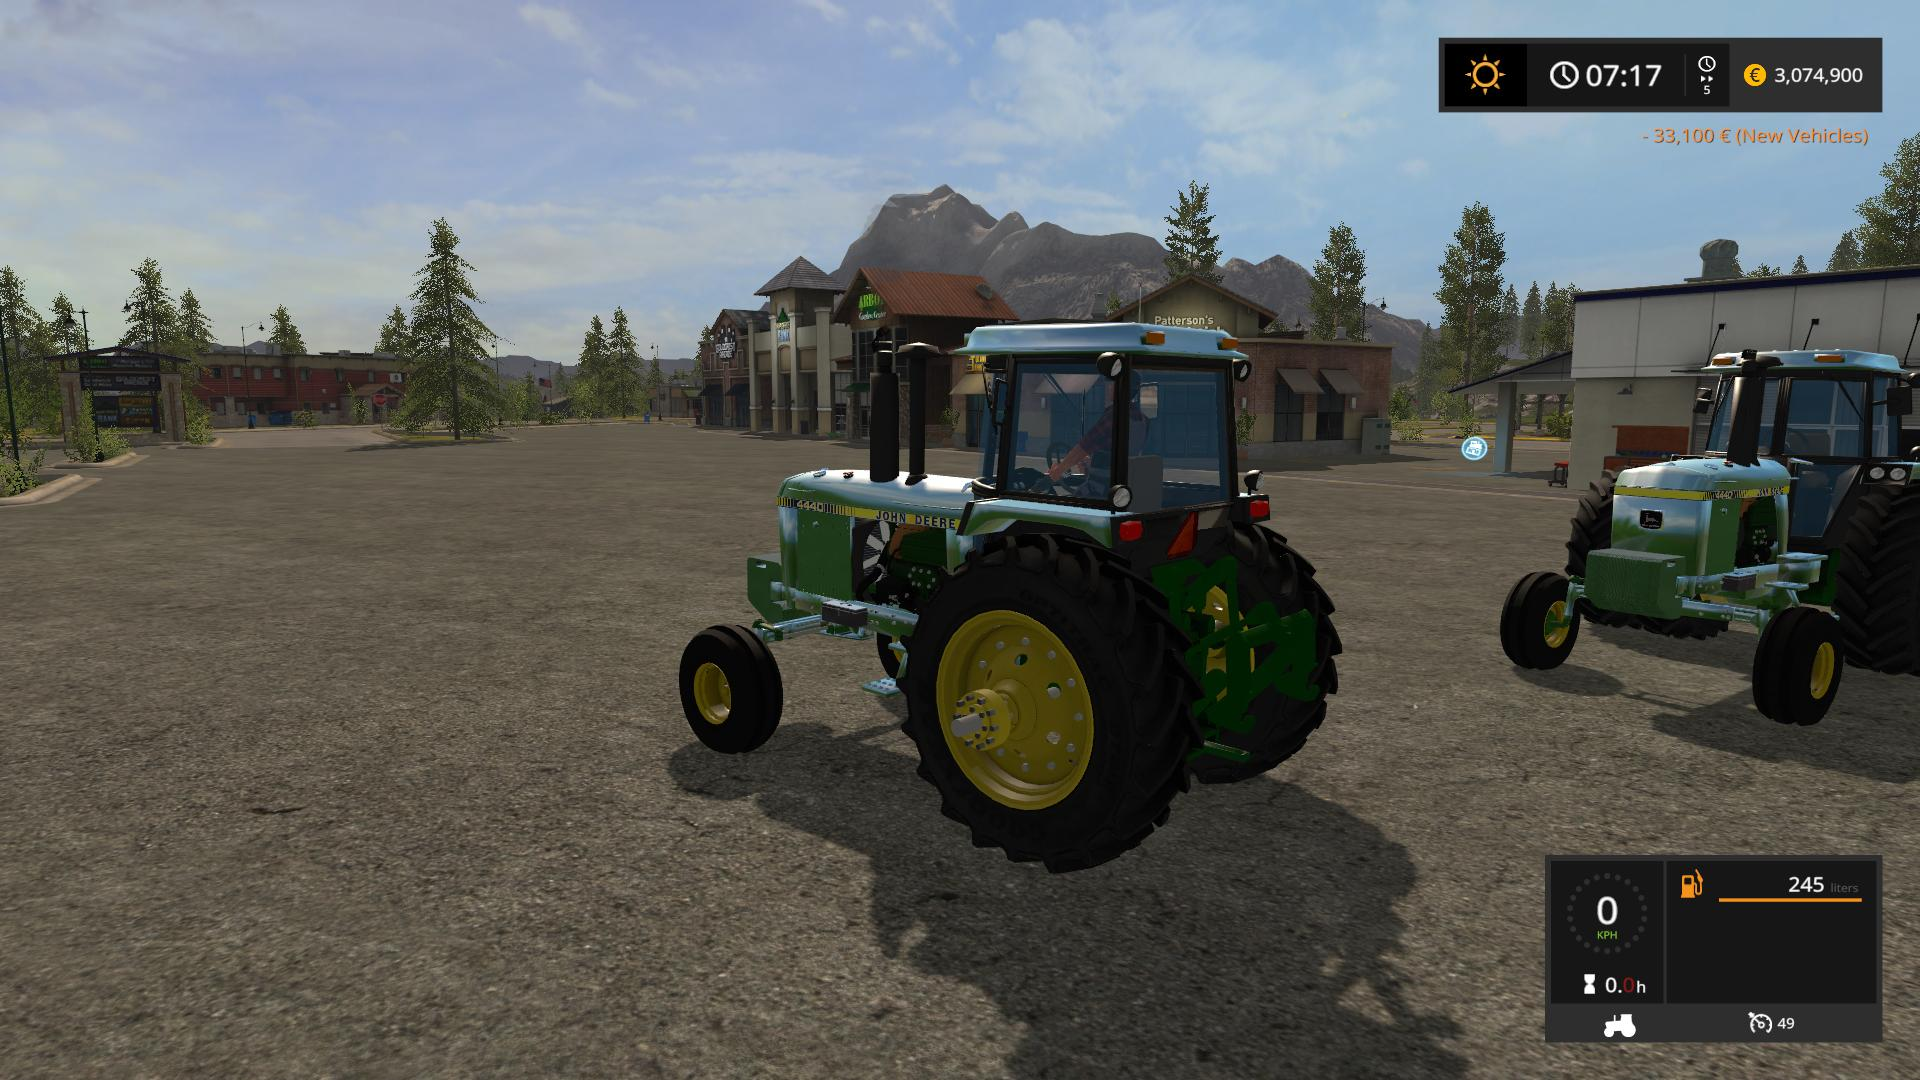 JD4440 by Knagsted v1